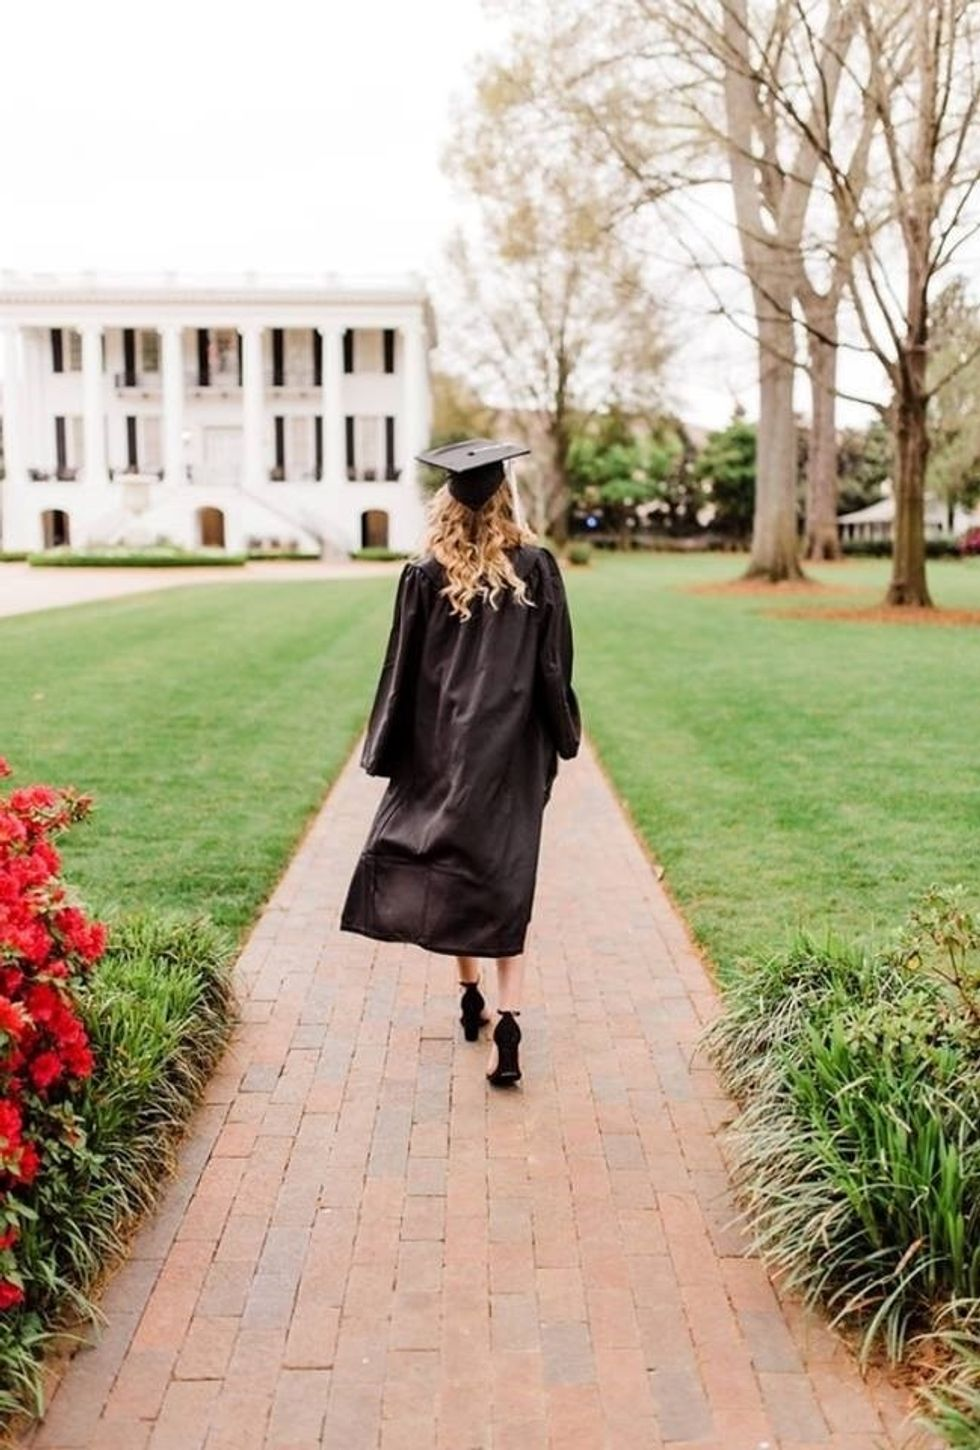 Contrary To Popular Belief, You Don't Need To Go To A Top-10 University To Be Successful